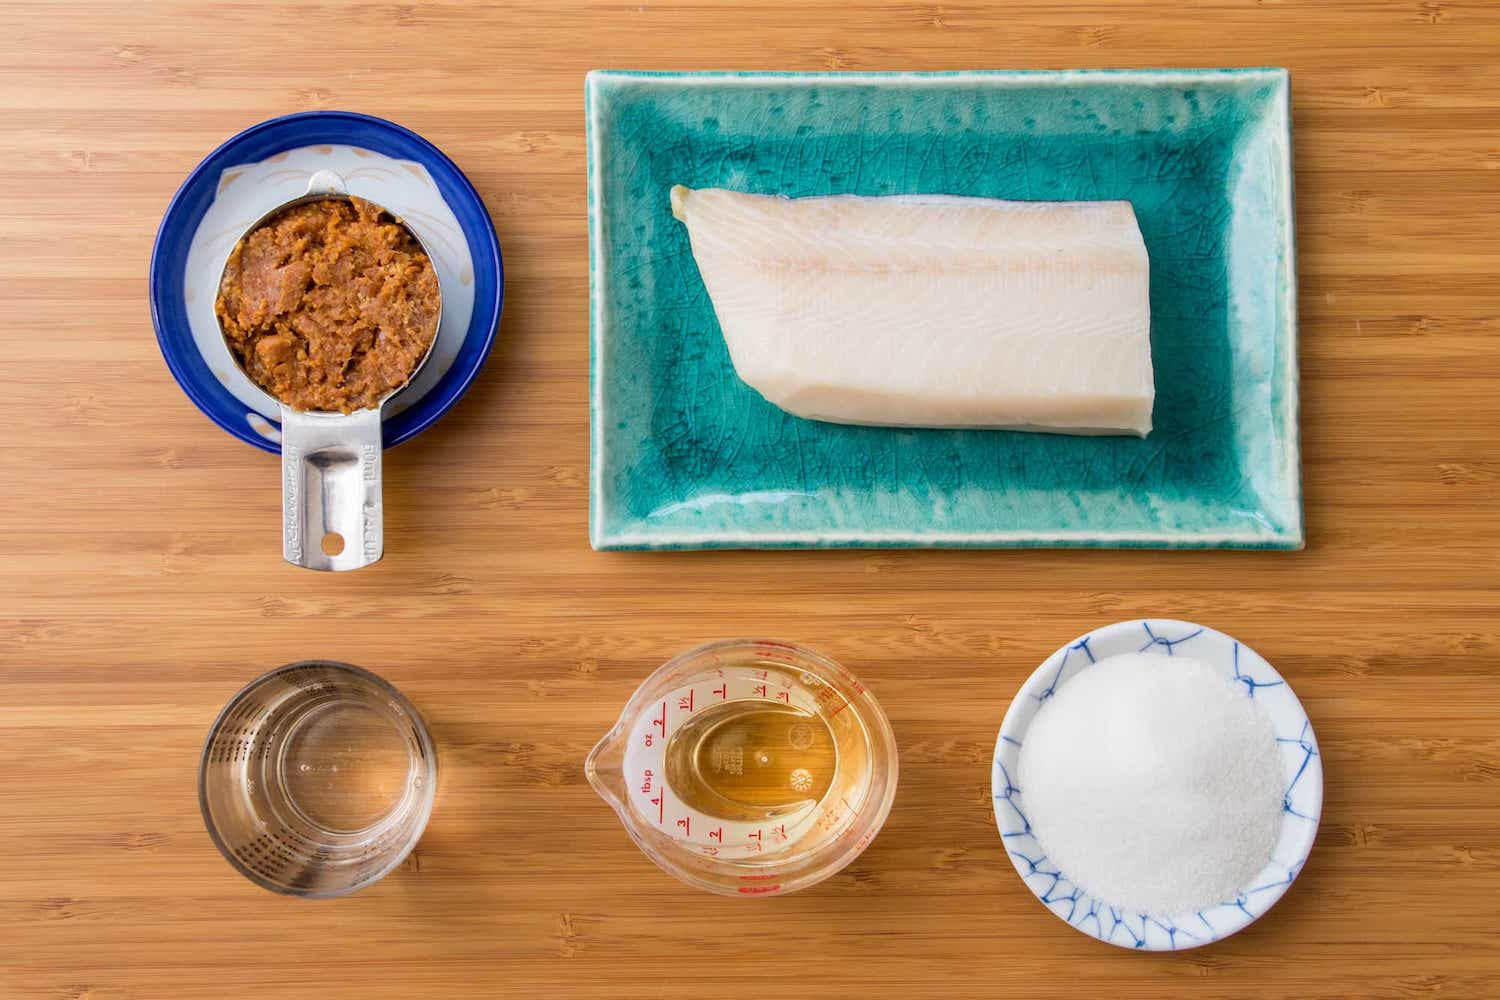 Miso butterfish ingredients: miso, butterfish, sugar, mirin, sake